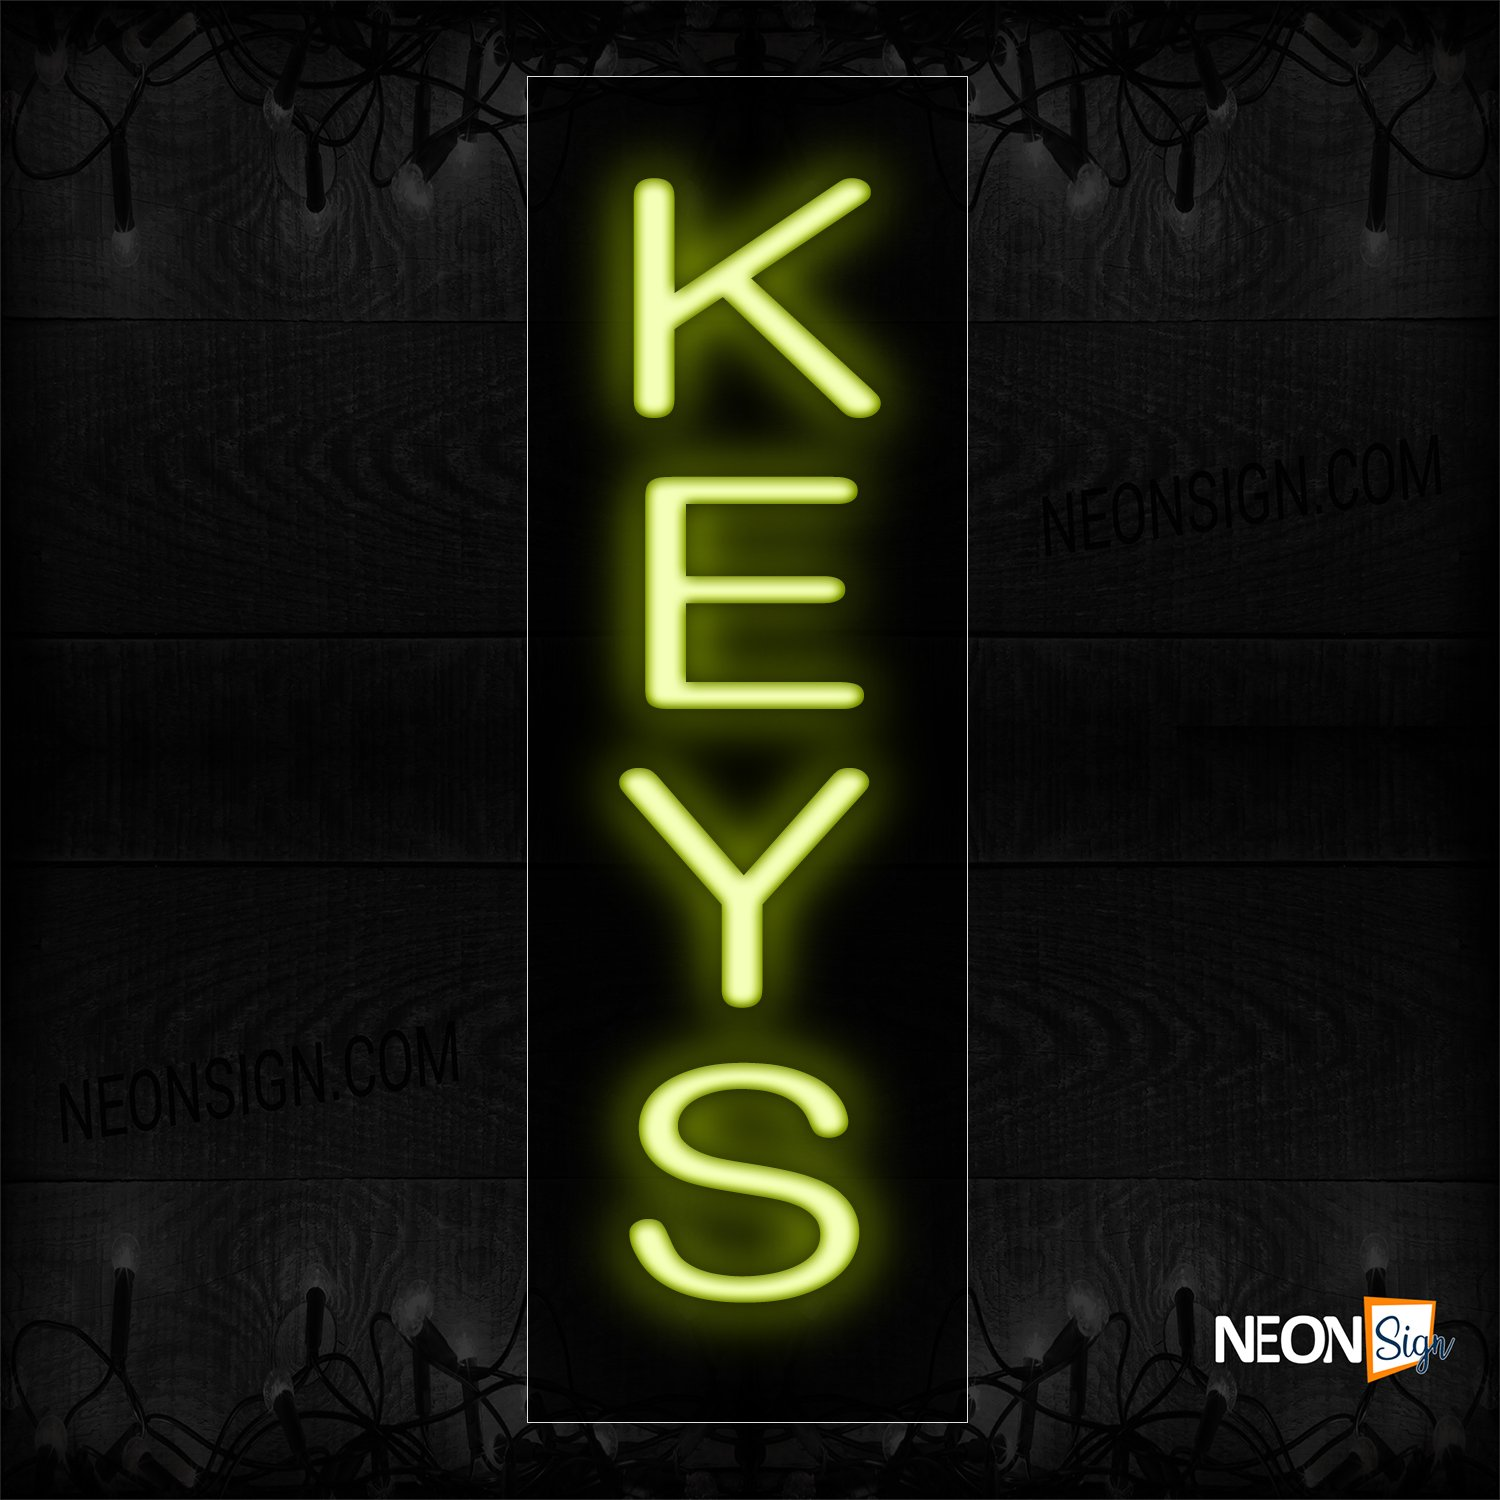 Image of 12253 Keys In Yellow (Vertical) Neon Sign_8x24 Black Backing